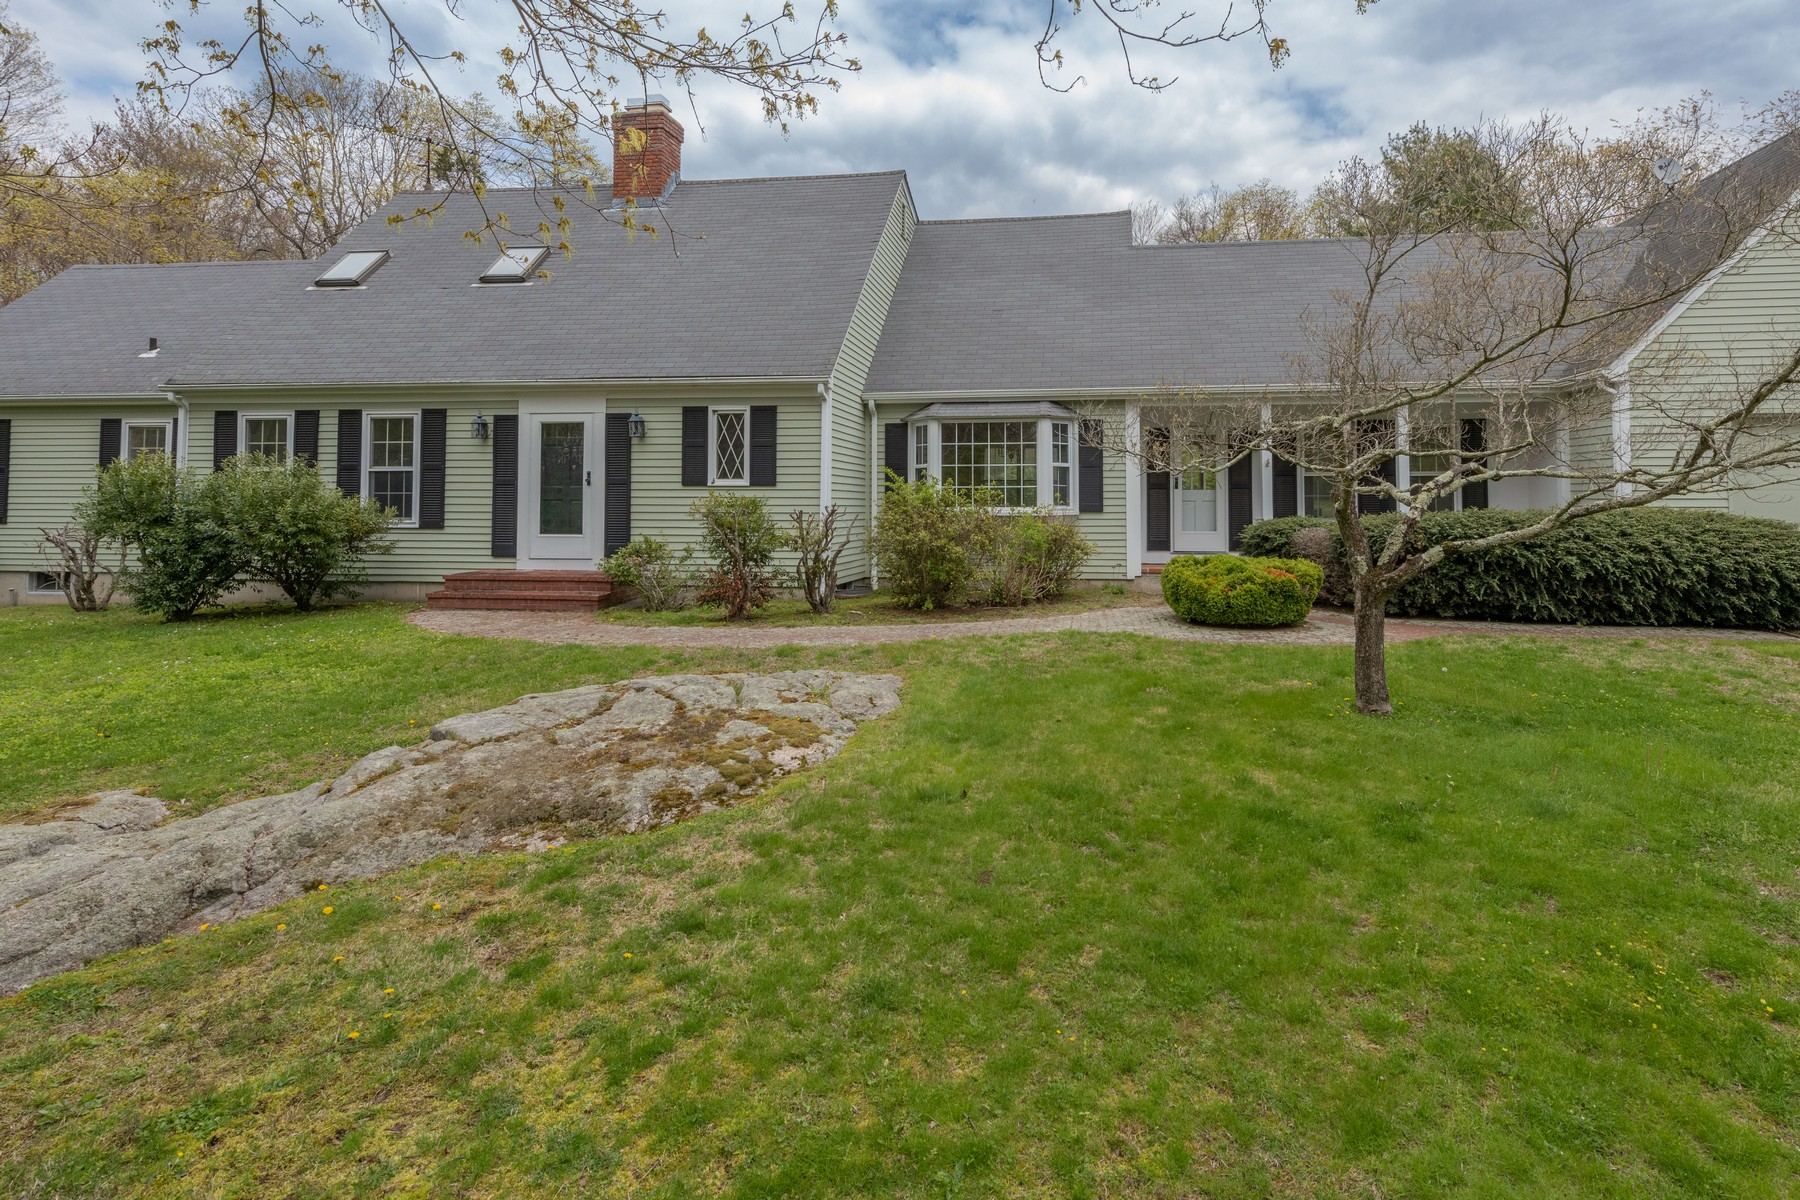 Casa unifamiliar en venta en/de 34-1 Johnny Cake Hill Road, Old Lyme, Connecticut ,06371  , EUA